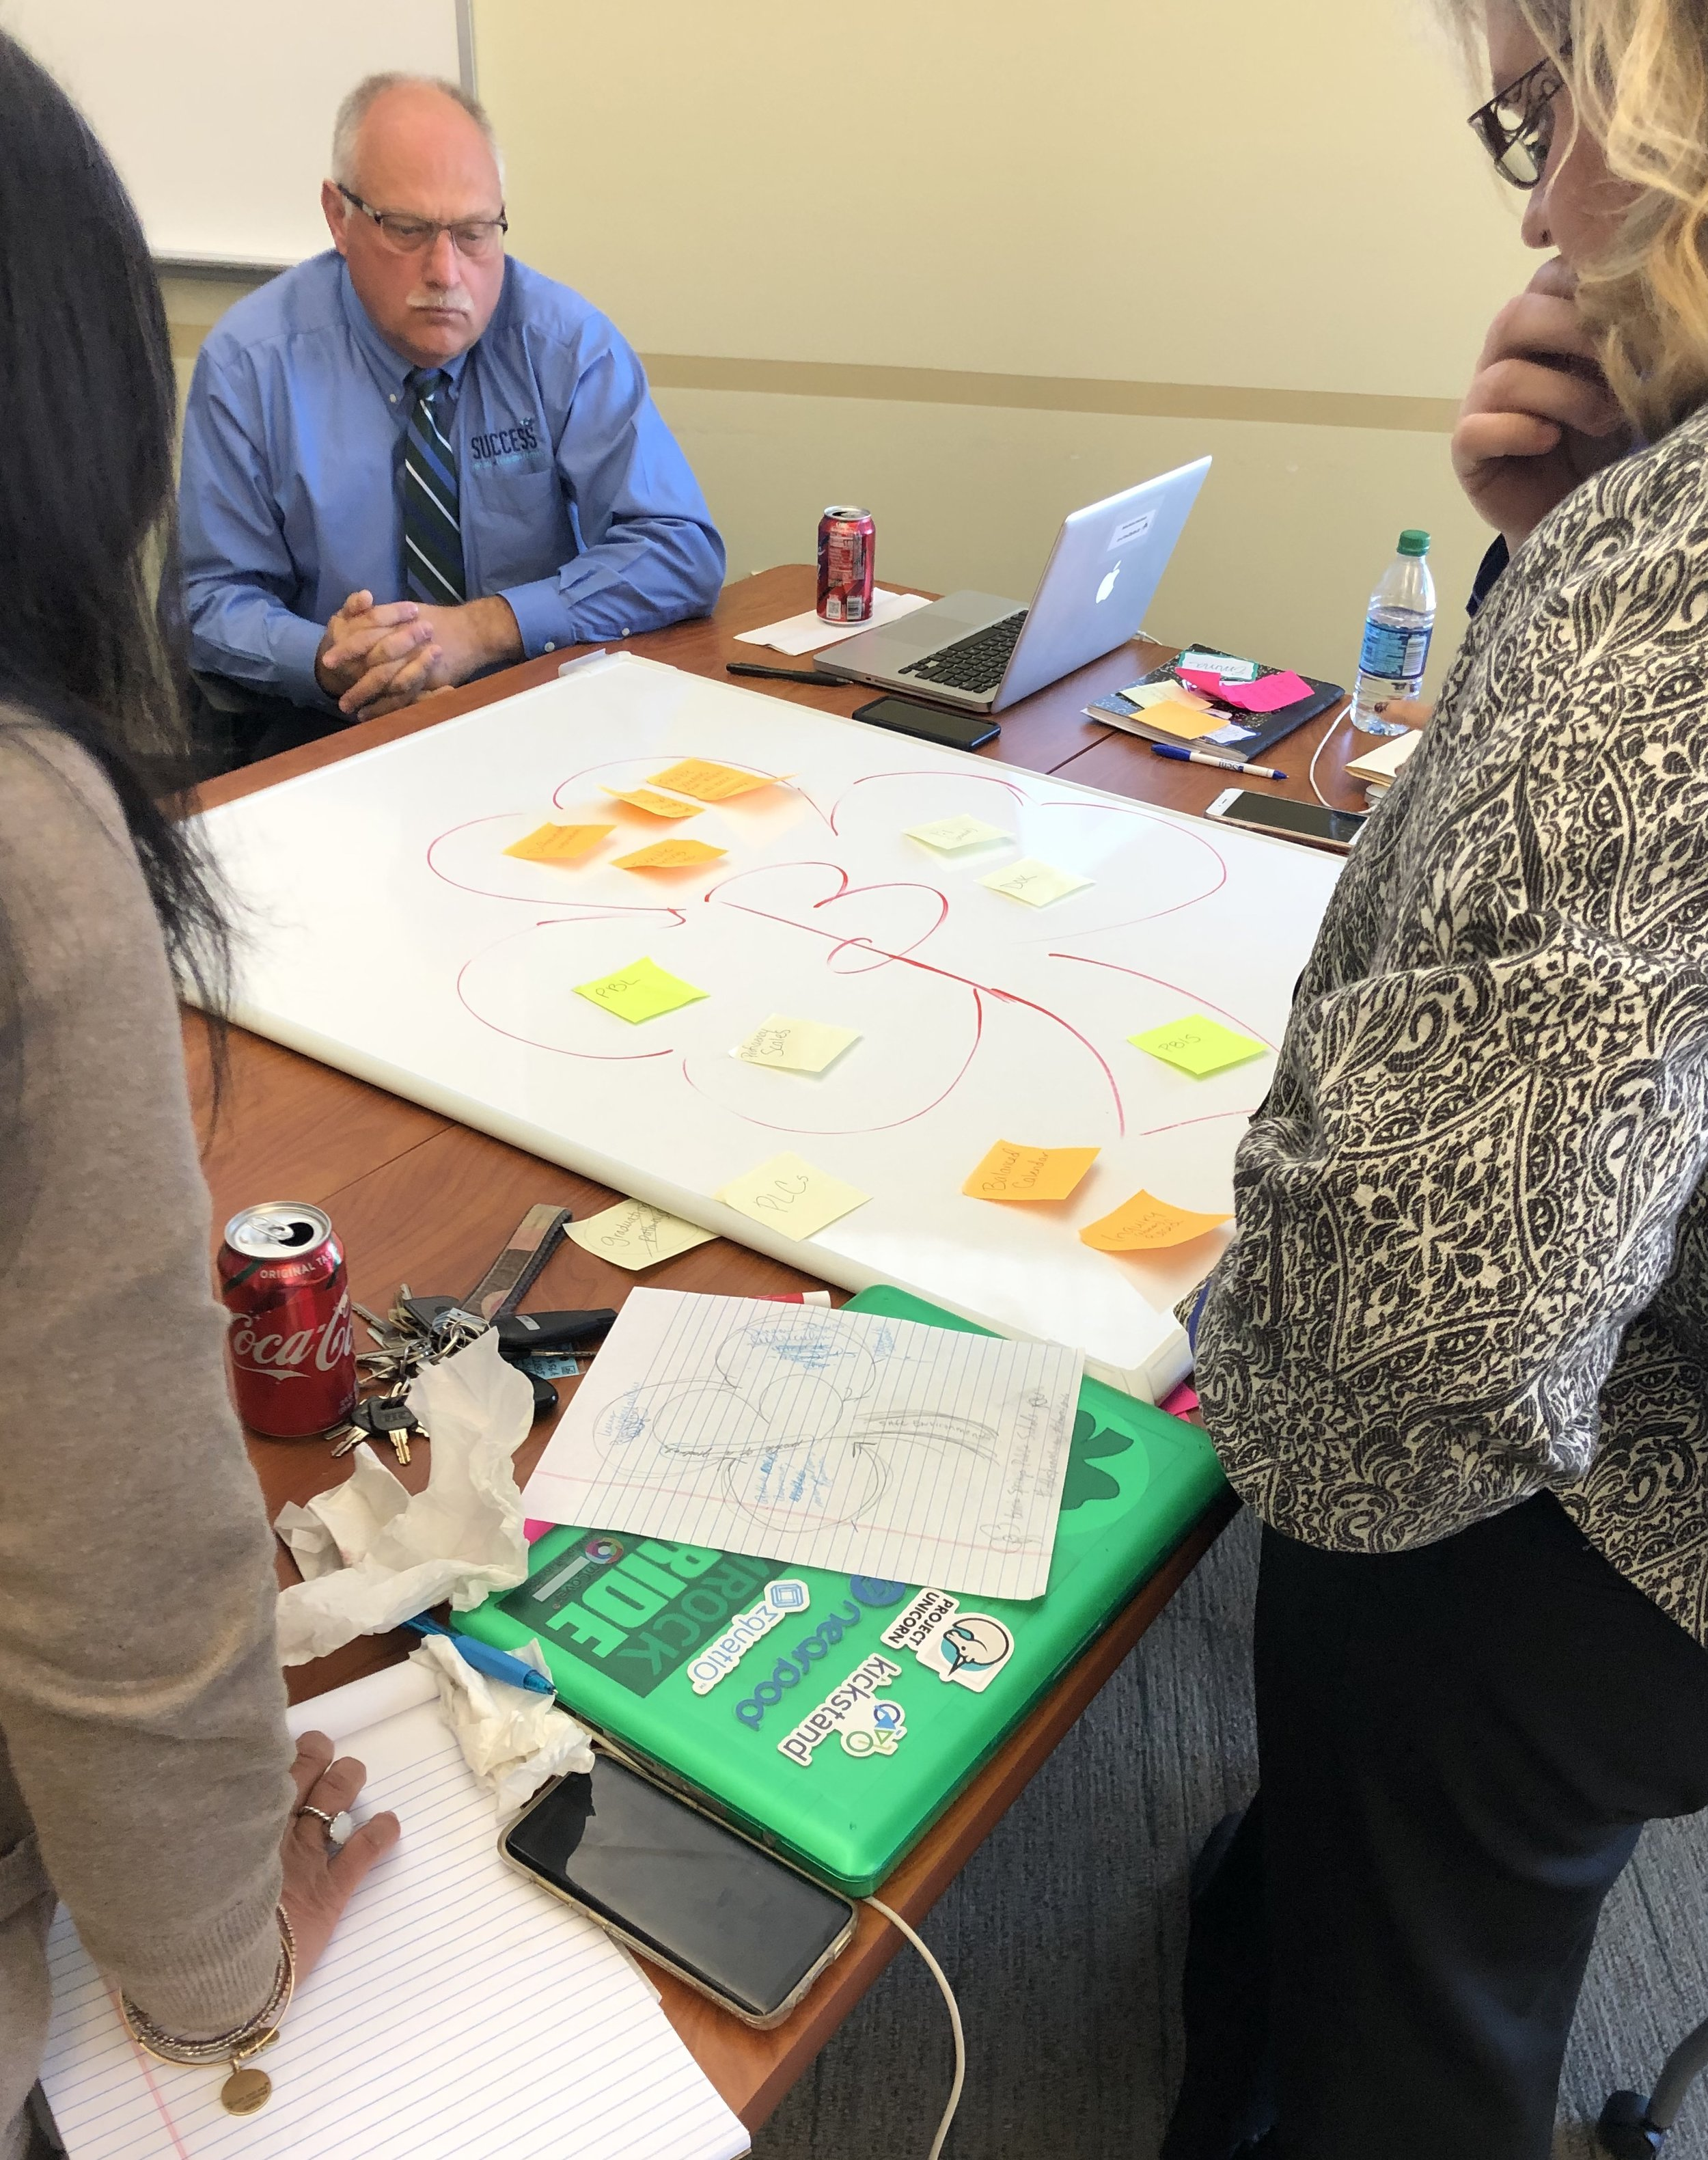 BSPS Superintendent Dave Eichberg, Virtual Academy Director Rachel Stout, Communications Director Gail Fox, and Science/Social Studies Instructional Coach Emma Haygood (not pictured) collaborate on their group's instructional model draft.